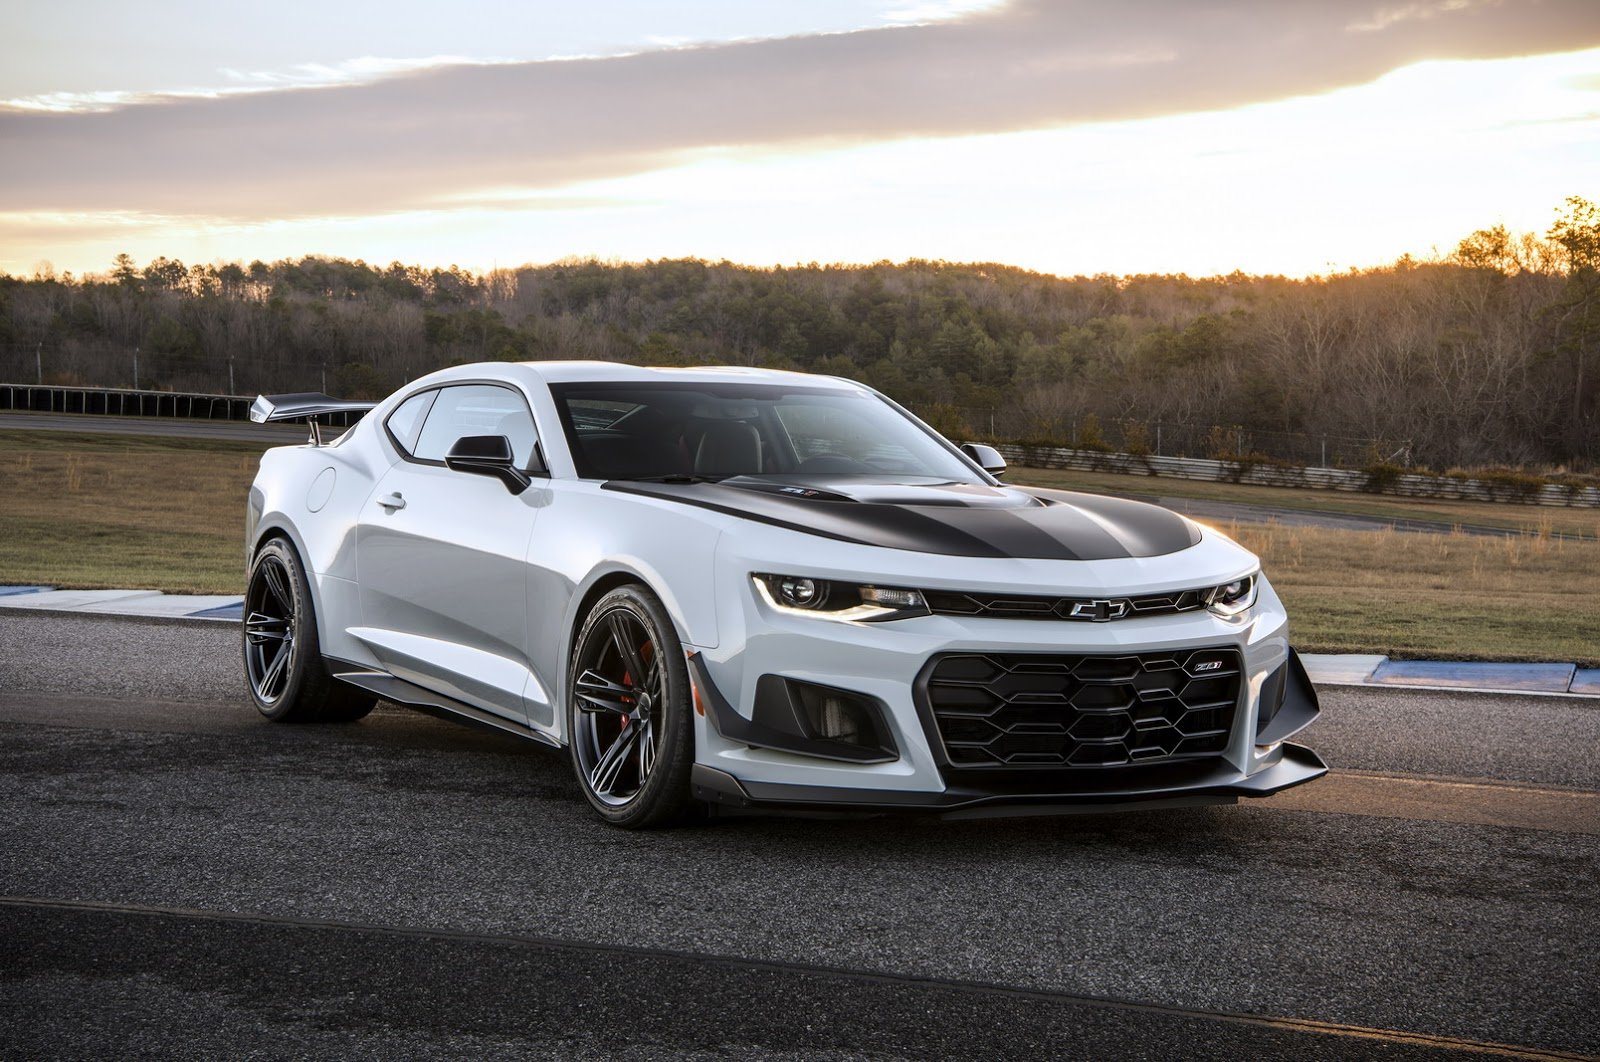 Camaro ZL1 1LE is the Fastest Pony Car on the Nurburgring